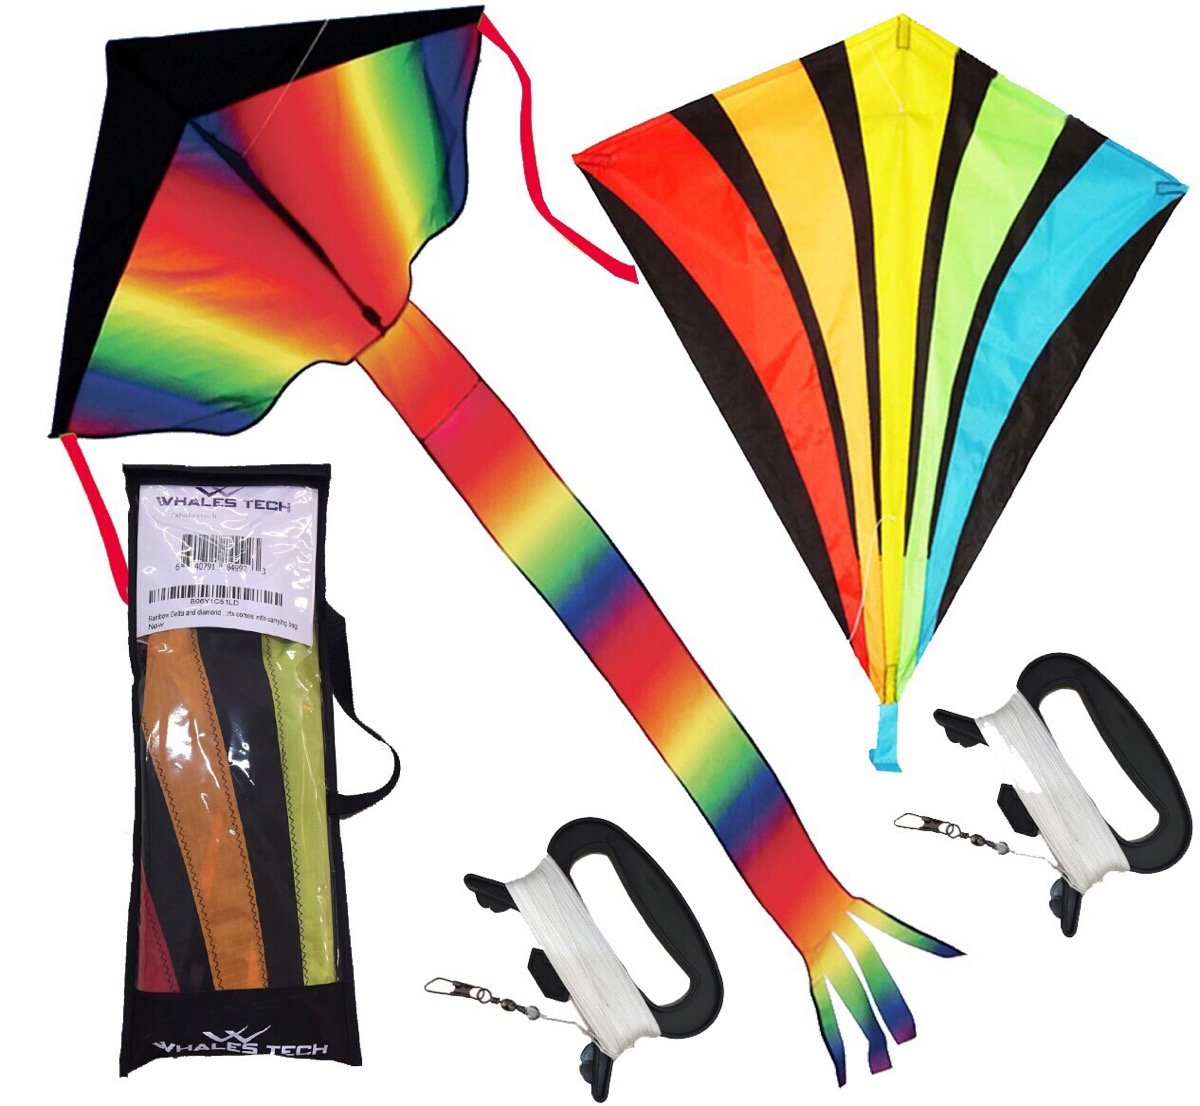 Rainbow Delta and diamond kite (2sets) kite for kids kite for adults easy flying with tail flyer line and handle perfect for outdoor fun beach toys and park sports comes with carrying bag